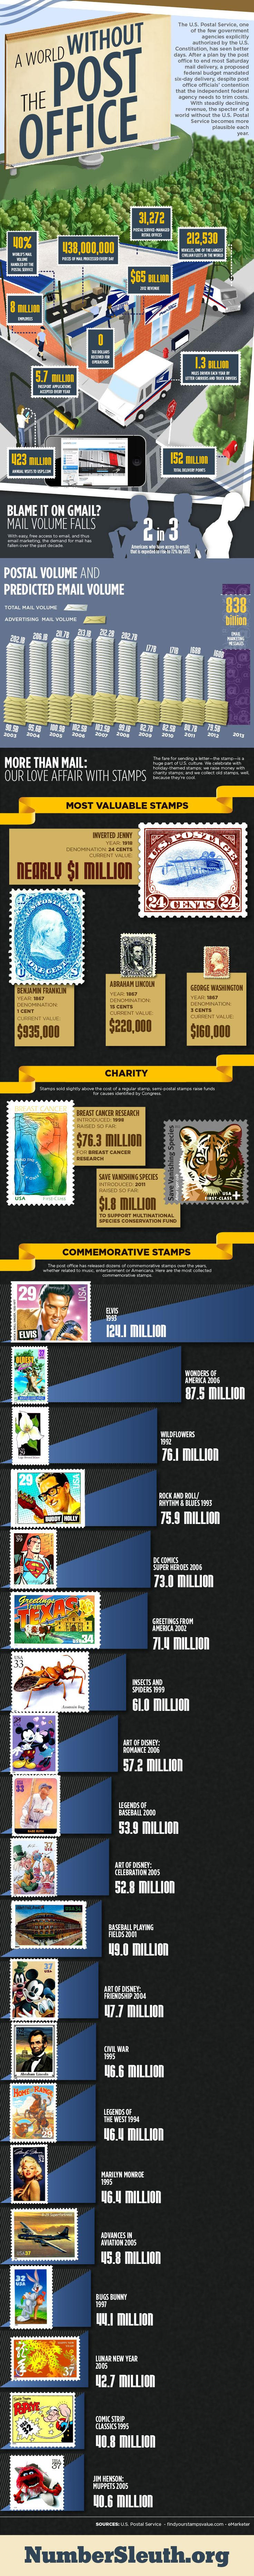 With steadily declining revenue, the specter of a world without the U.S. Postal Service becomes more plausible each year.